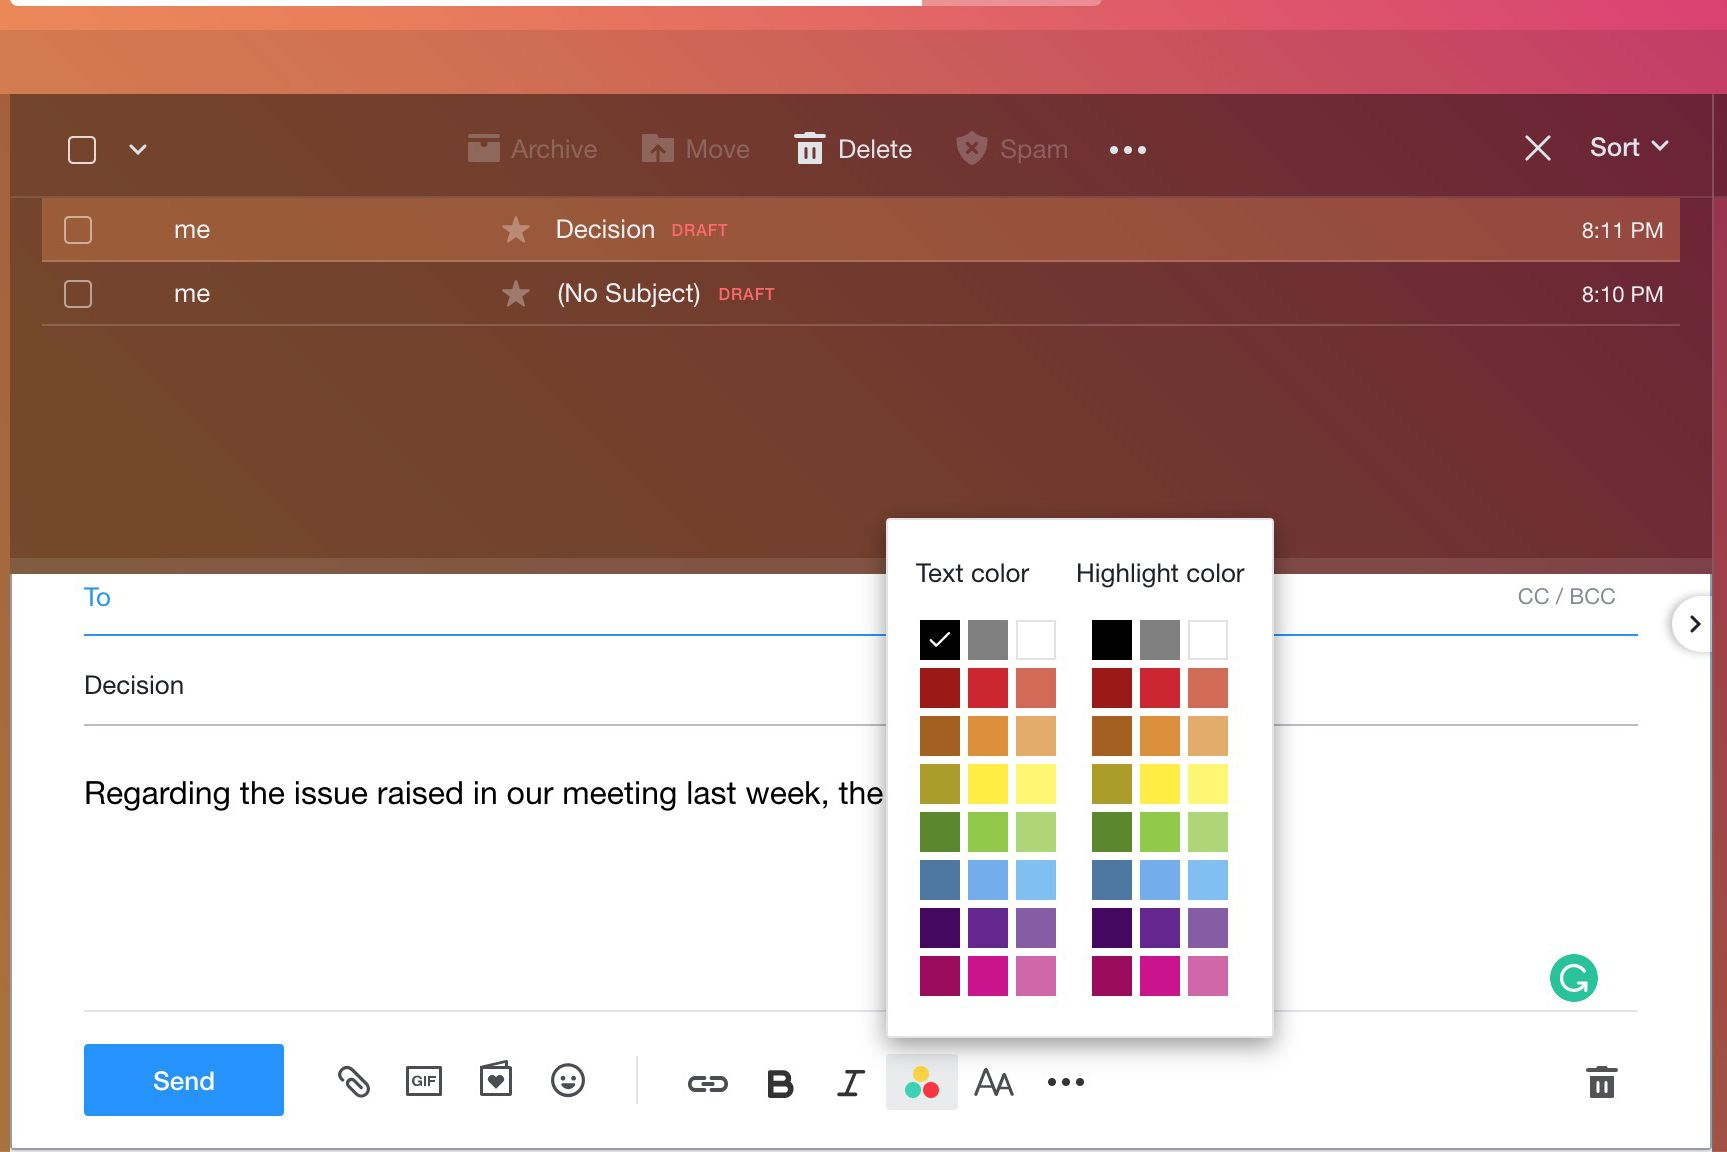 Yahoo Mail text and highlight color palette